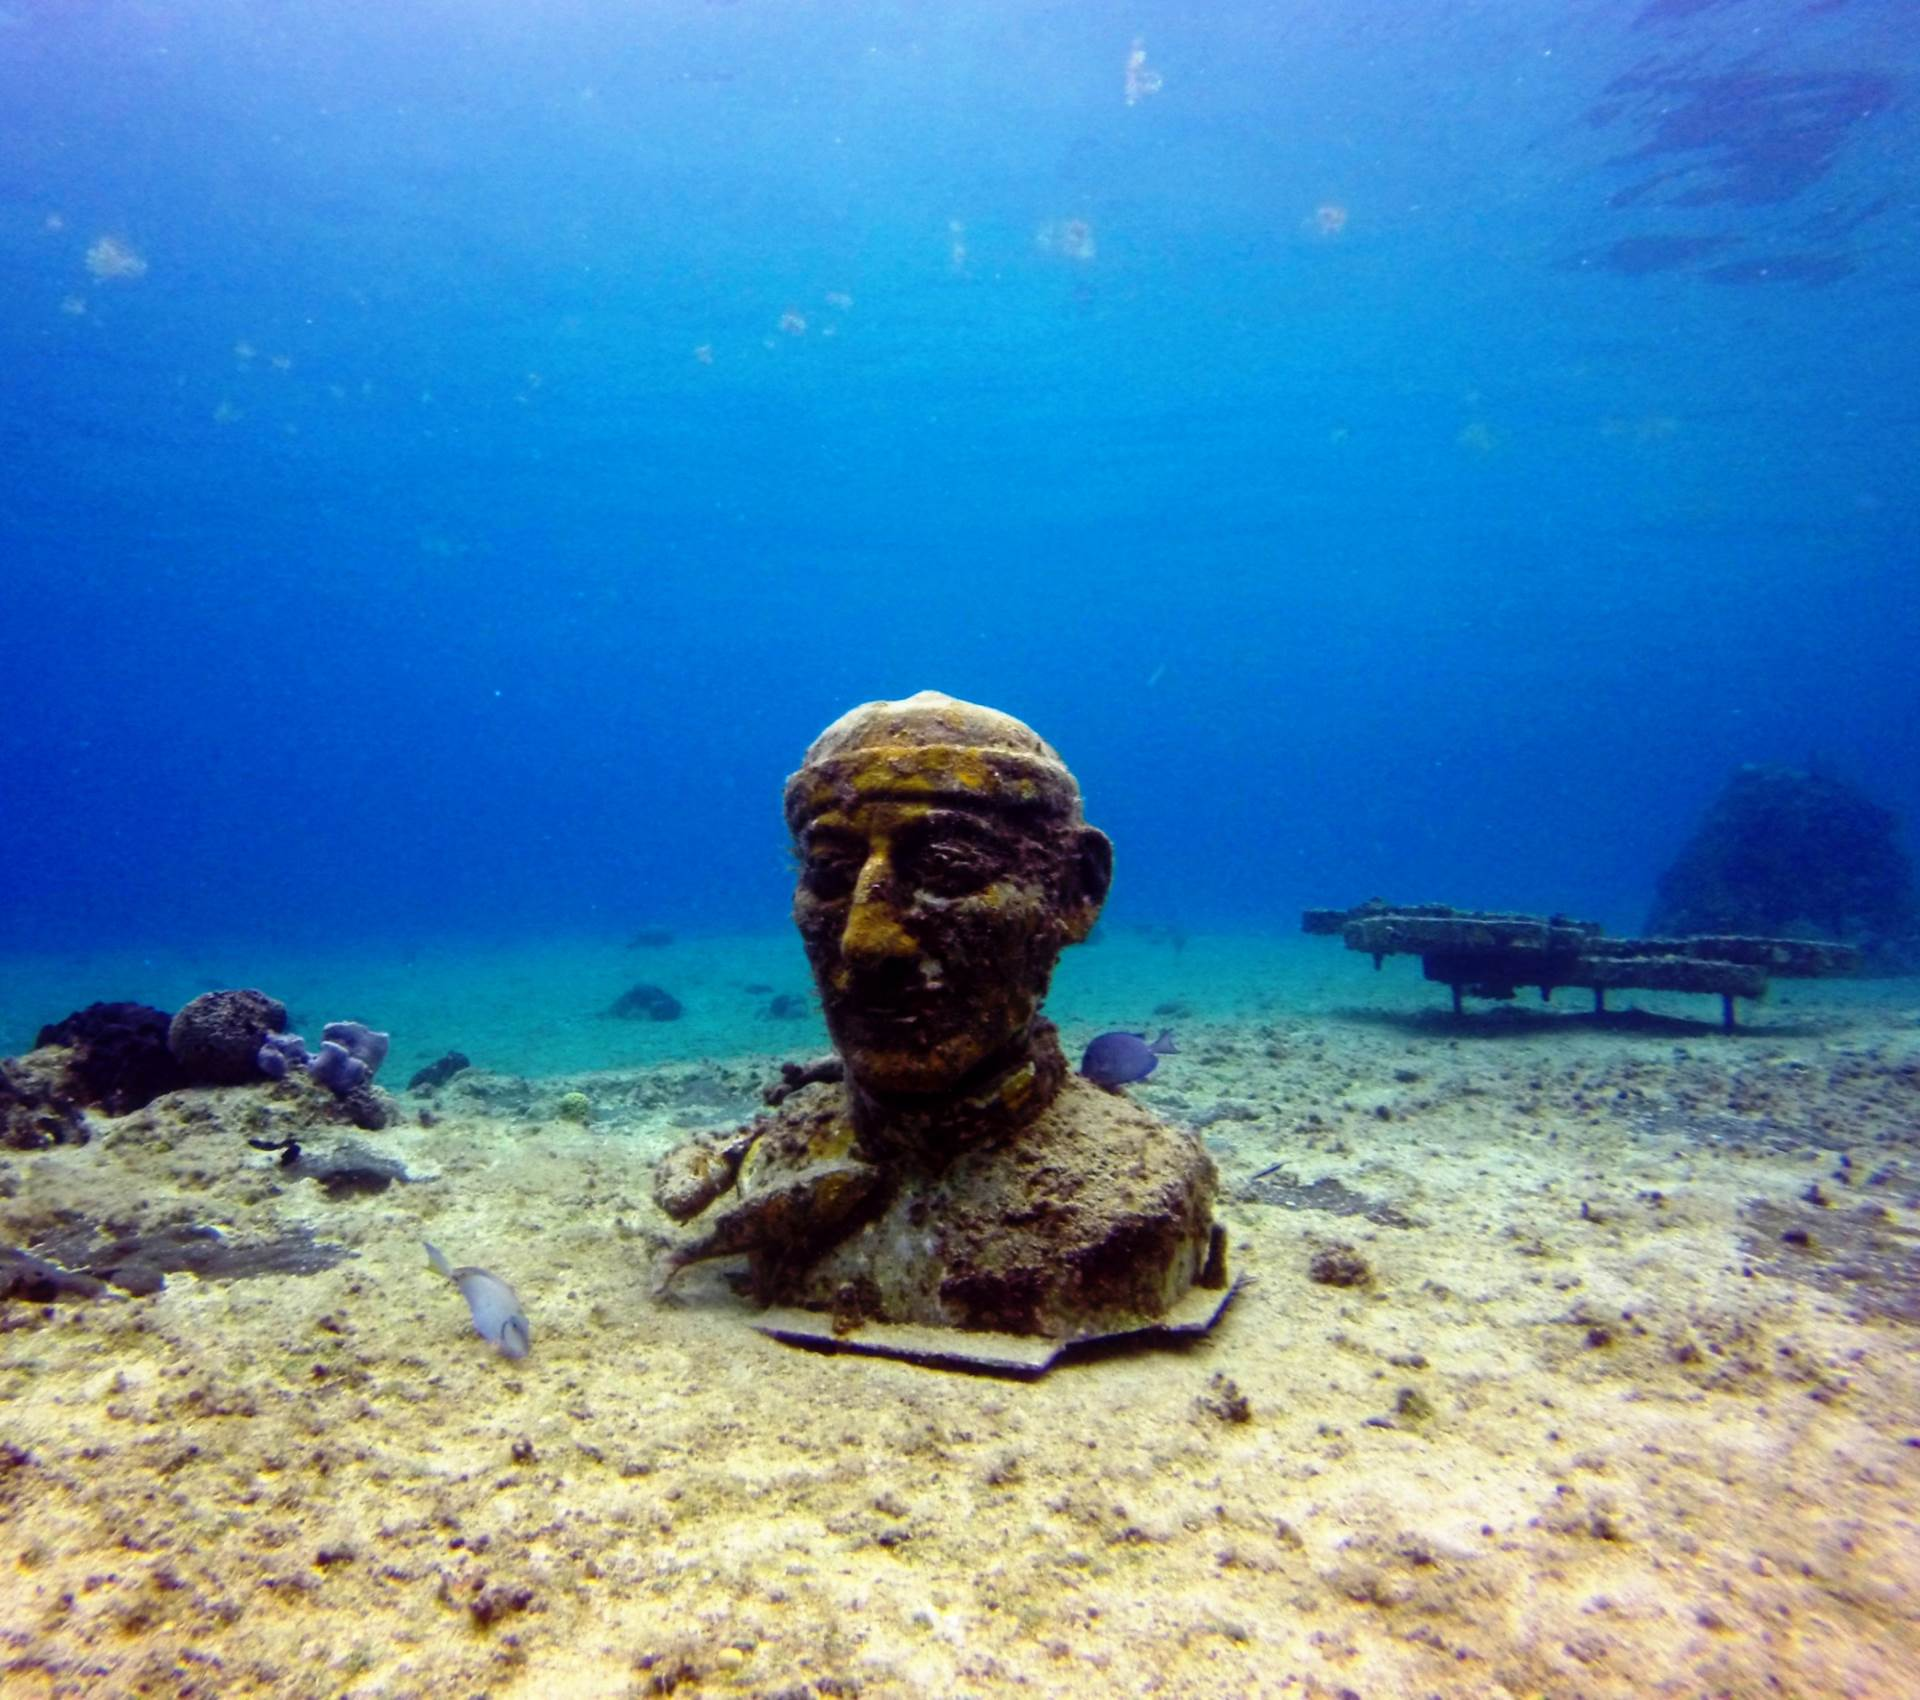 Named by Jacques Cousteau as one of the Top 10 dive spots in the world.   Come & Dive in Cozumel with us!   info@mapleleafscuba.com #MapleLeafScuba #Scuba #Cozumel #Mexico #PADI #Reef